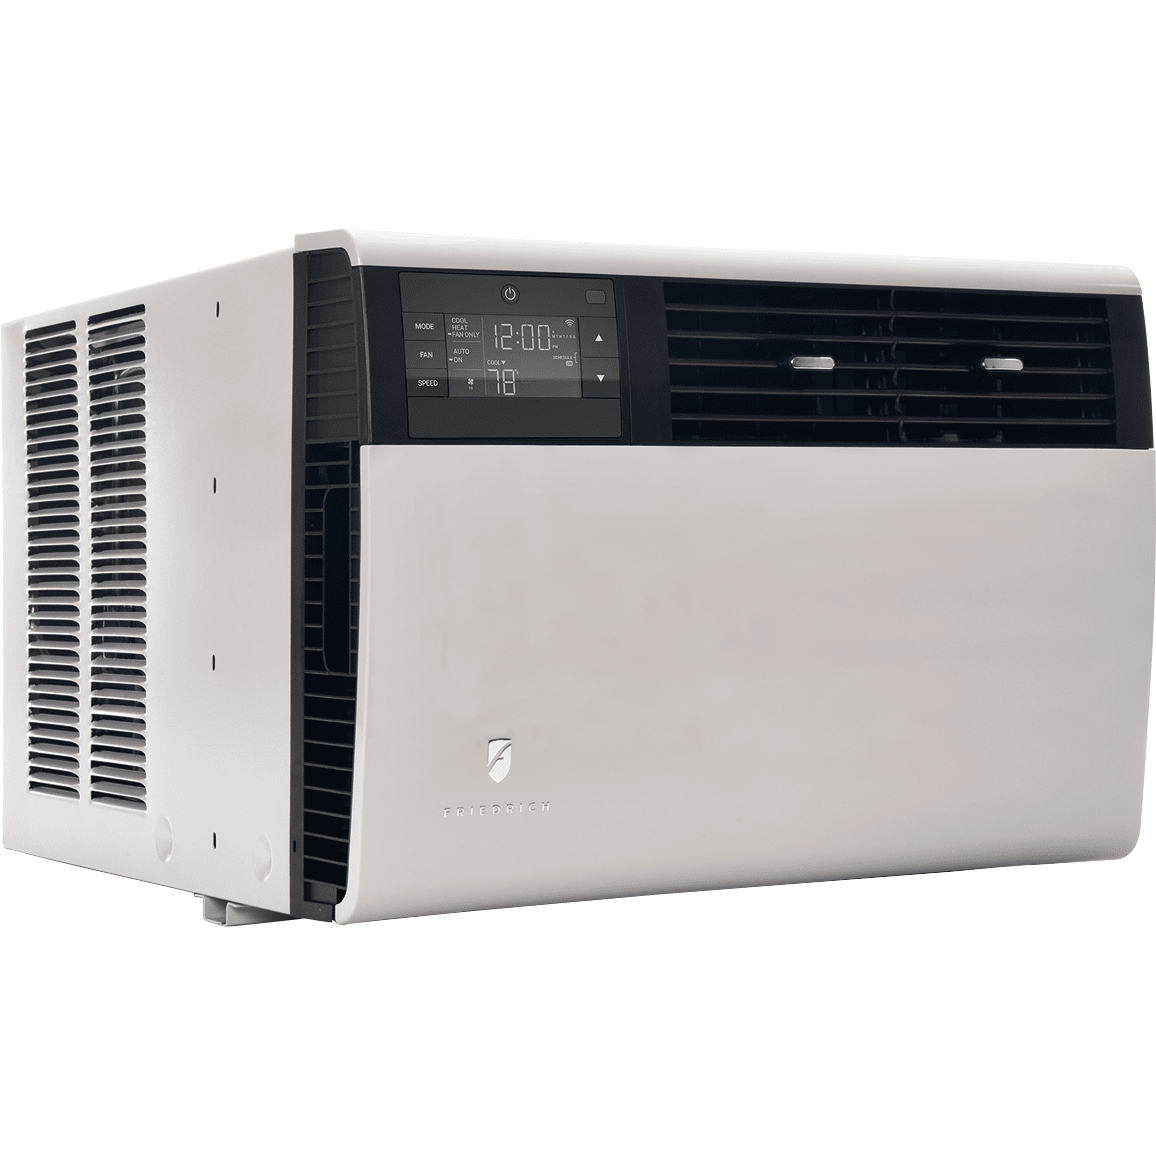 Friedrich Kuhl 8,000 BTU Window Air Conditioner